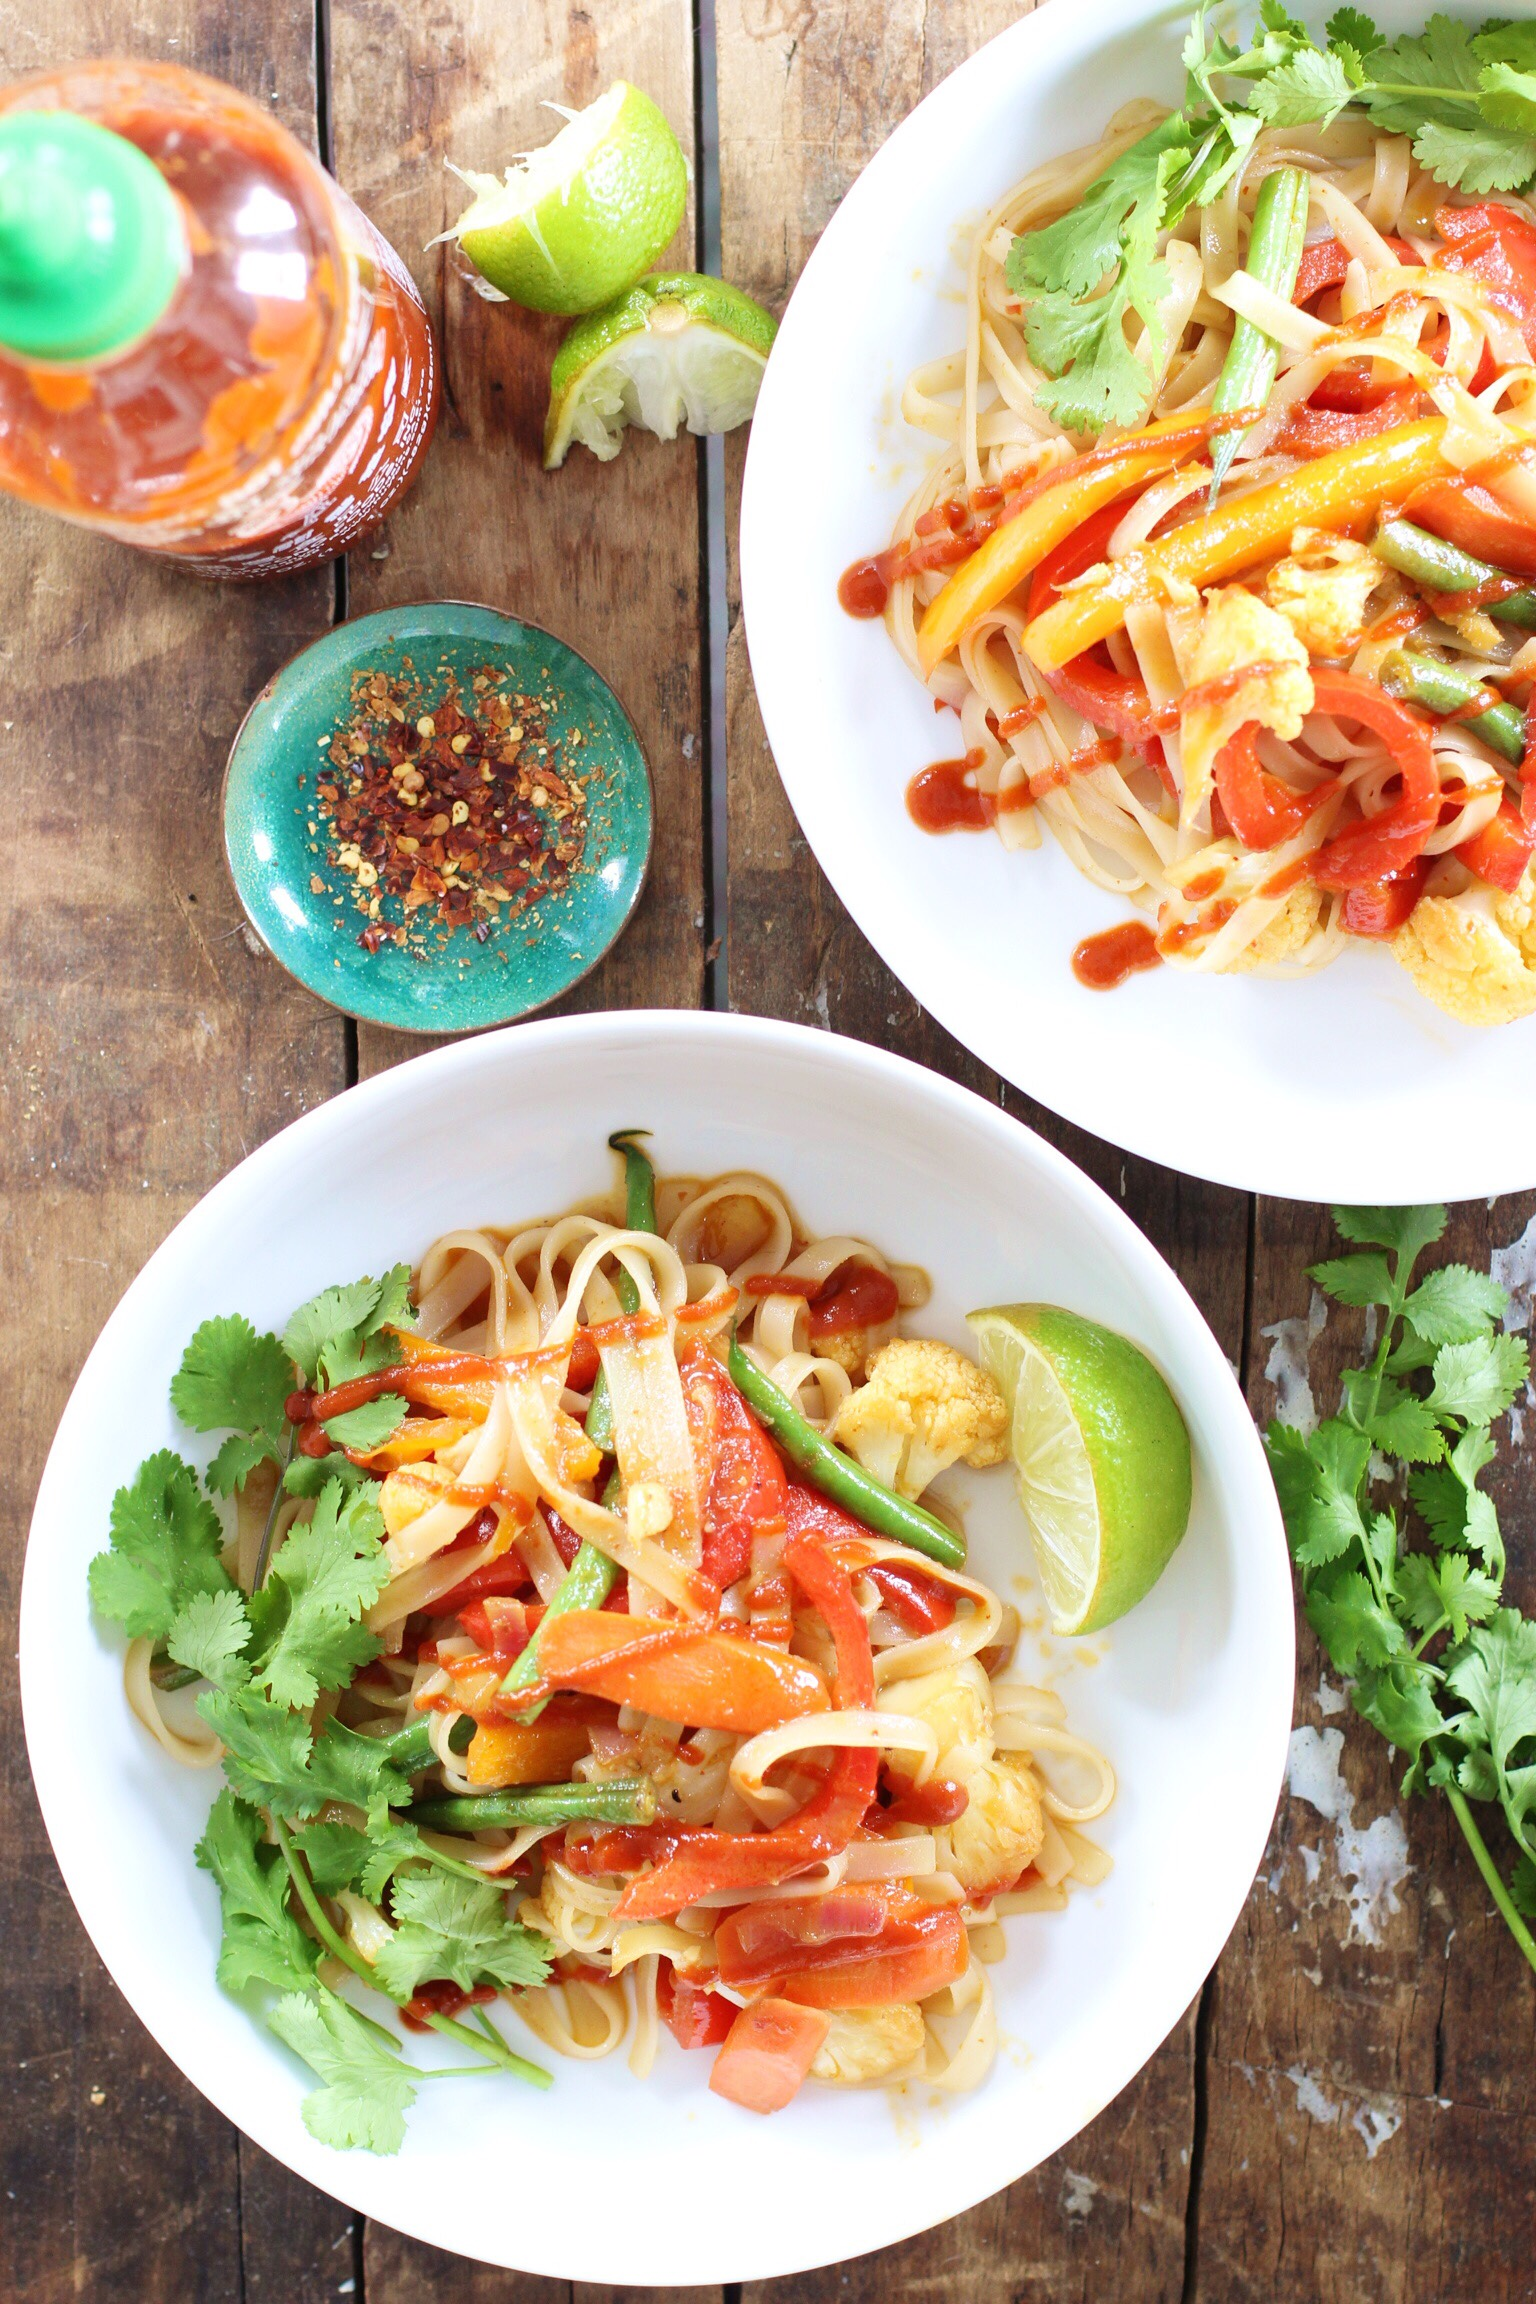 Coconut curry stir fry with rice noodles - The Pastiche